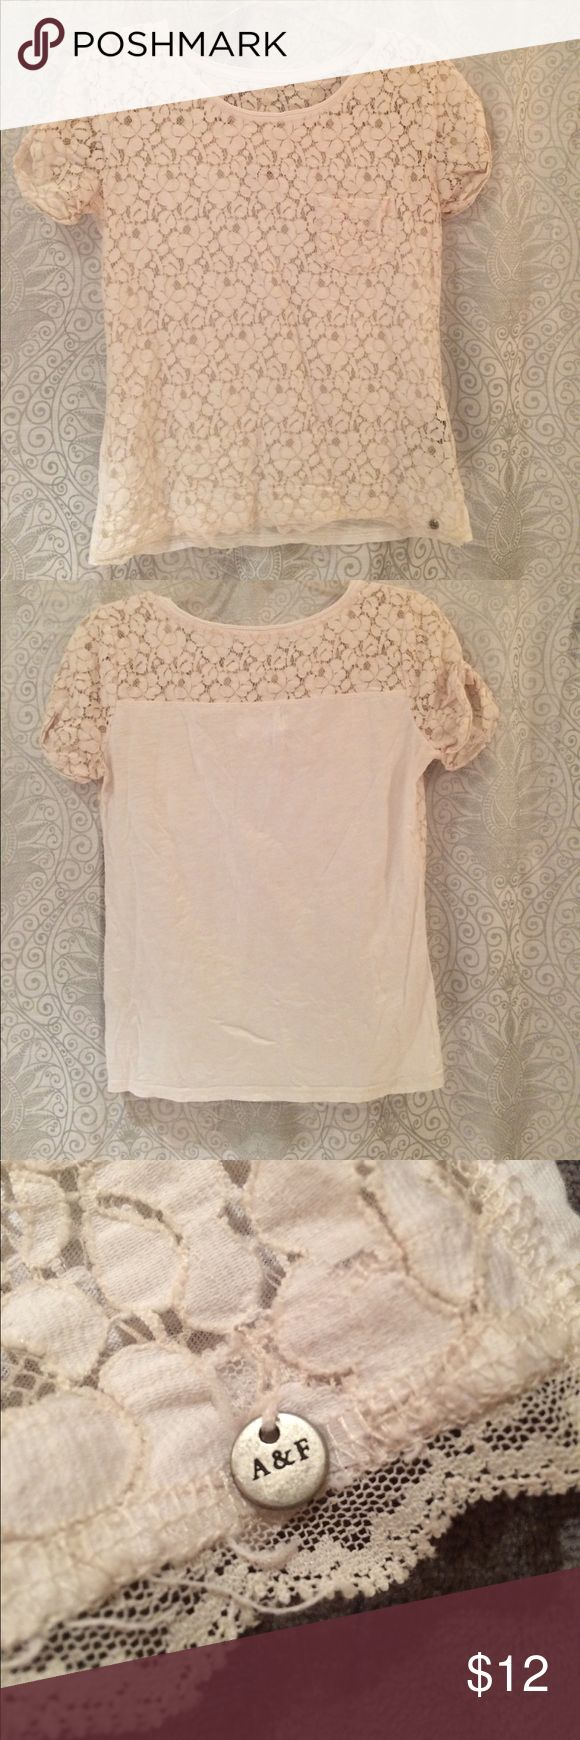 Abercrombie & Fitch cream lace top elegant short sleeve cream lace top Abercrombie & Fitch Tops Blouses